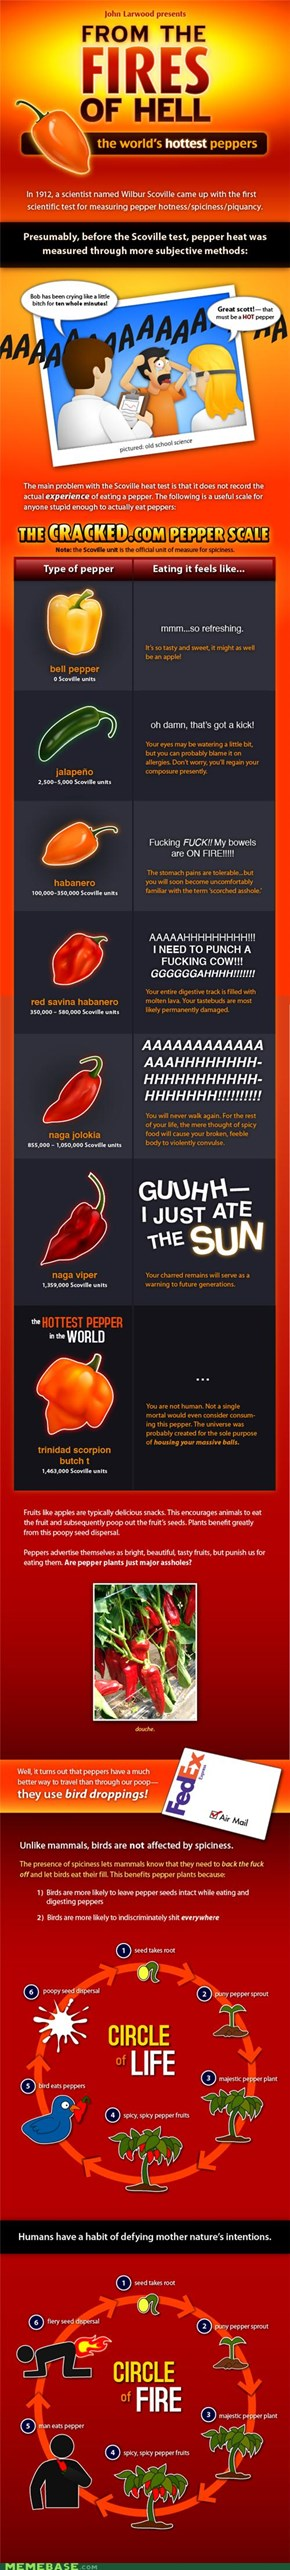 The world's hottest peppers